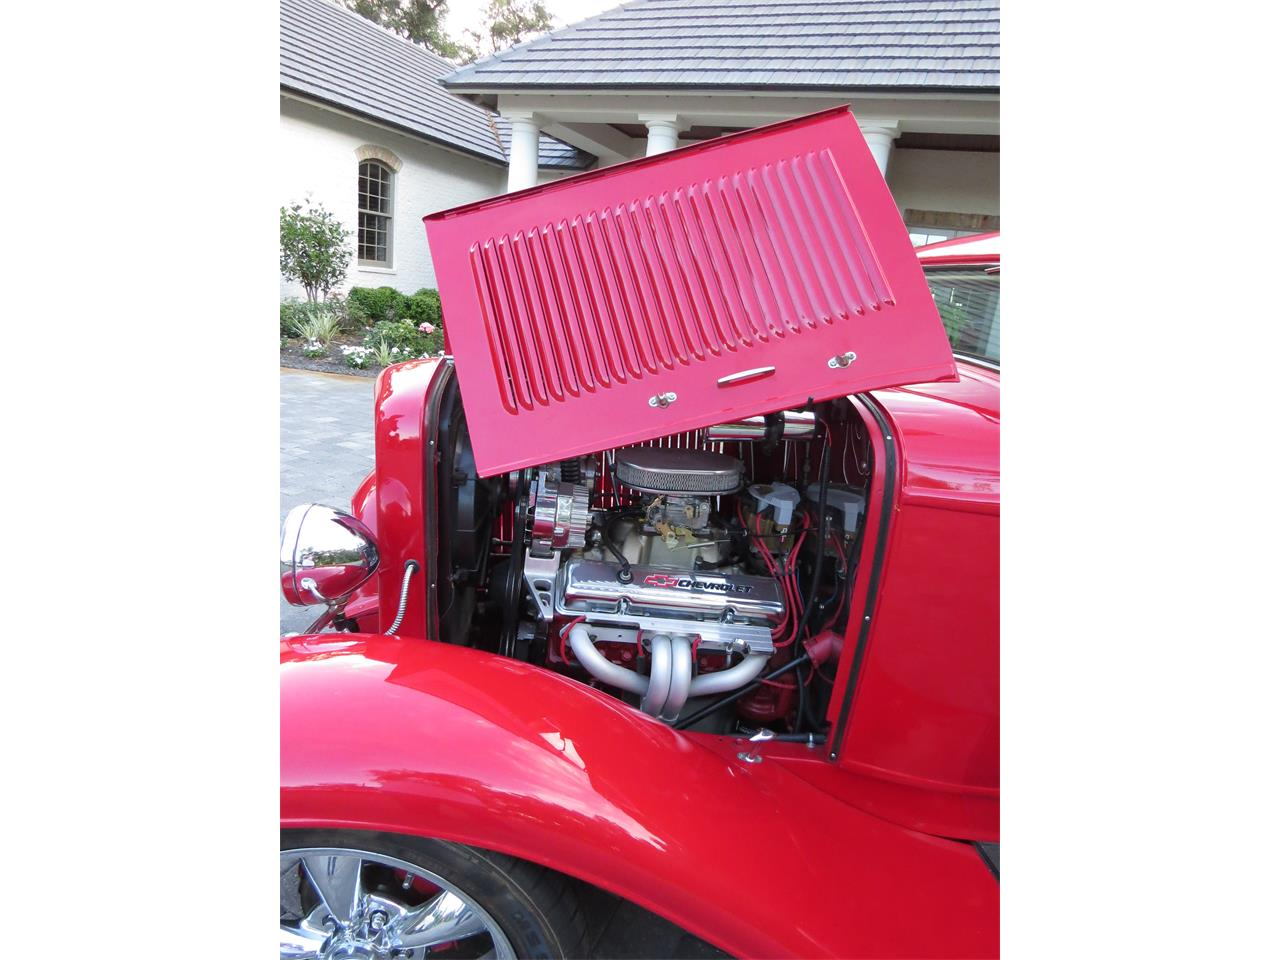 Large Picture of '32 Ford 5-Window Coupe located in Destin Florida - $45,000.00 Offered by a Private Seller - NTM1